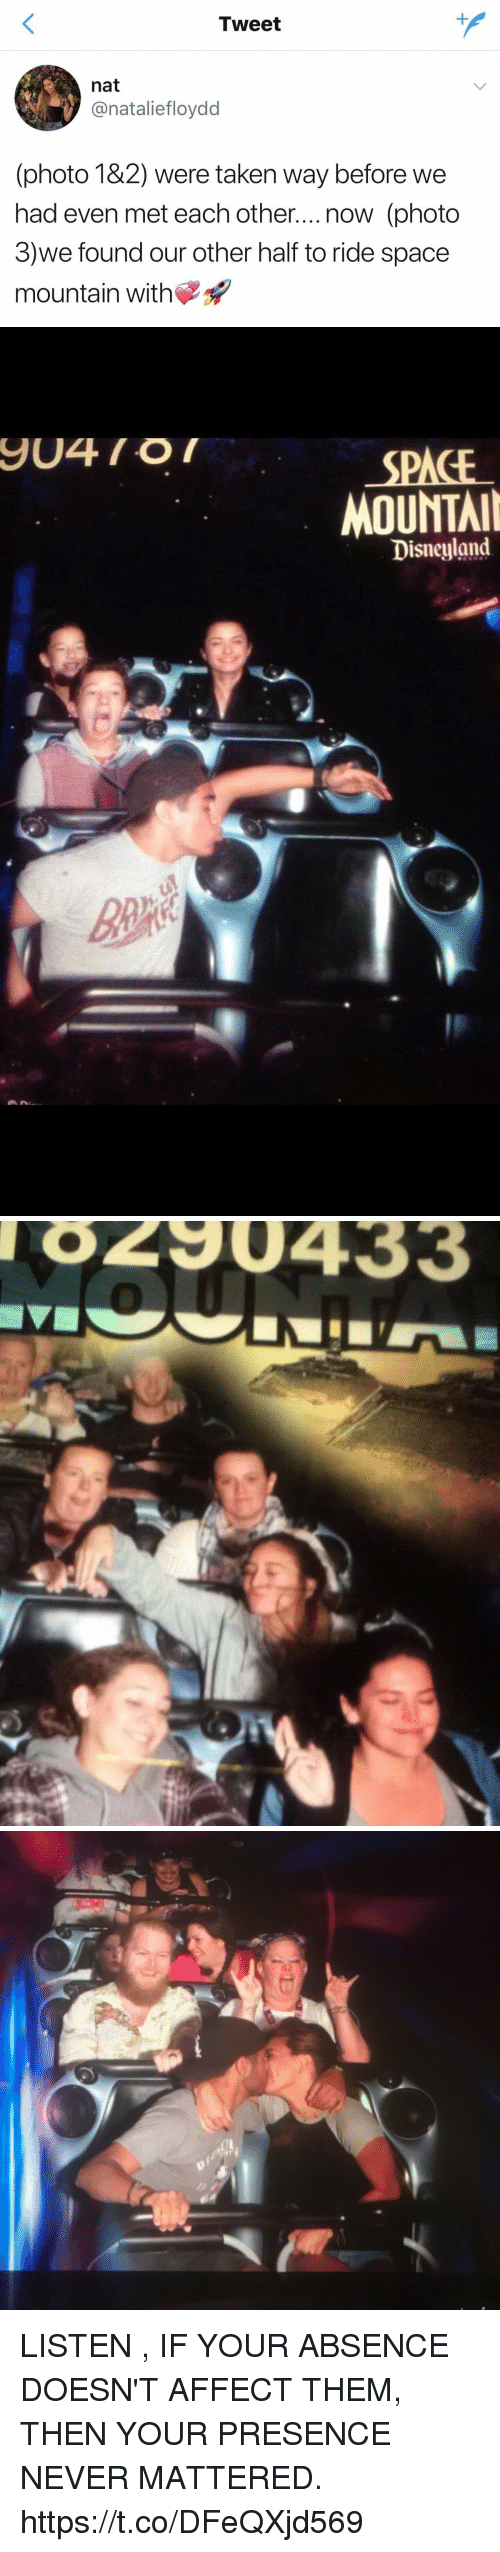 affectation: Tweet  nat  onatalietloydd  (photo 182) were taken way before we  had even met each other....now (photo  3)we found our other half to ride space  mountain with   SPACE  MOUNTAI  Disneyland   8290433 LISTEN , IF YOUR ABSENCE DOESN'T AFFECT THEM, THEN YOUR PRESENCE NEVER MATTERED. https://t.co/DFeQXjd569